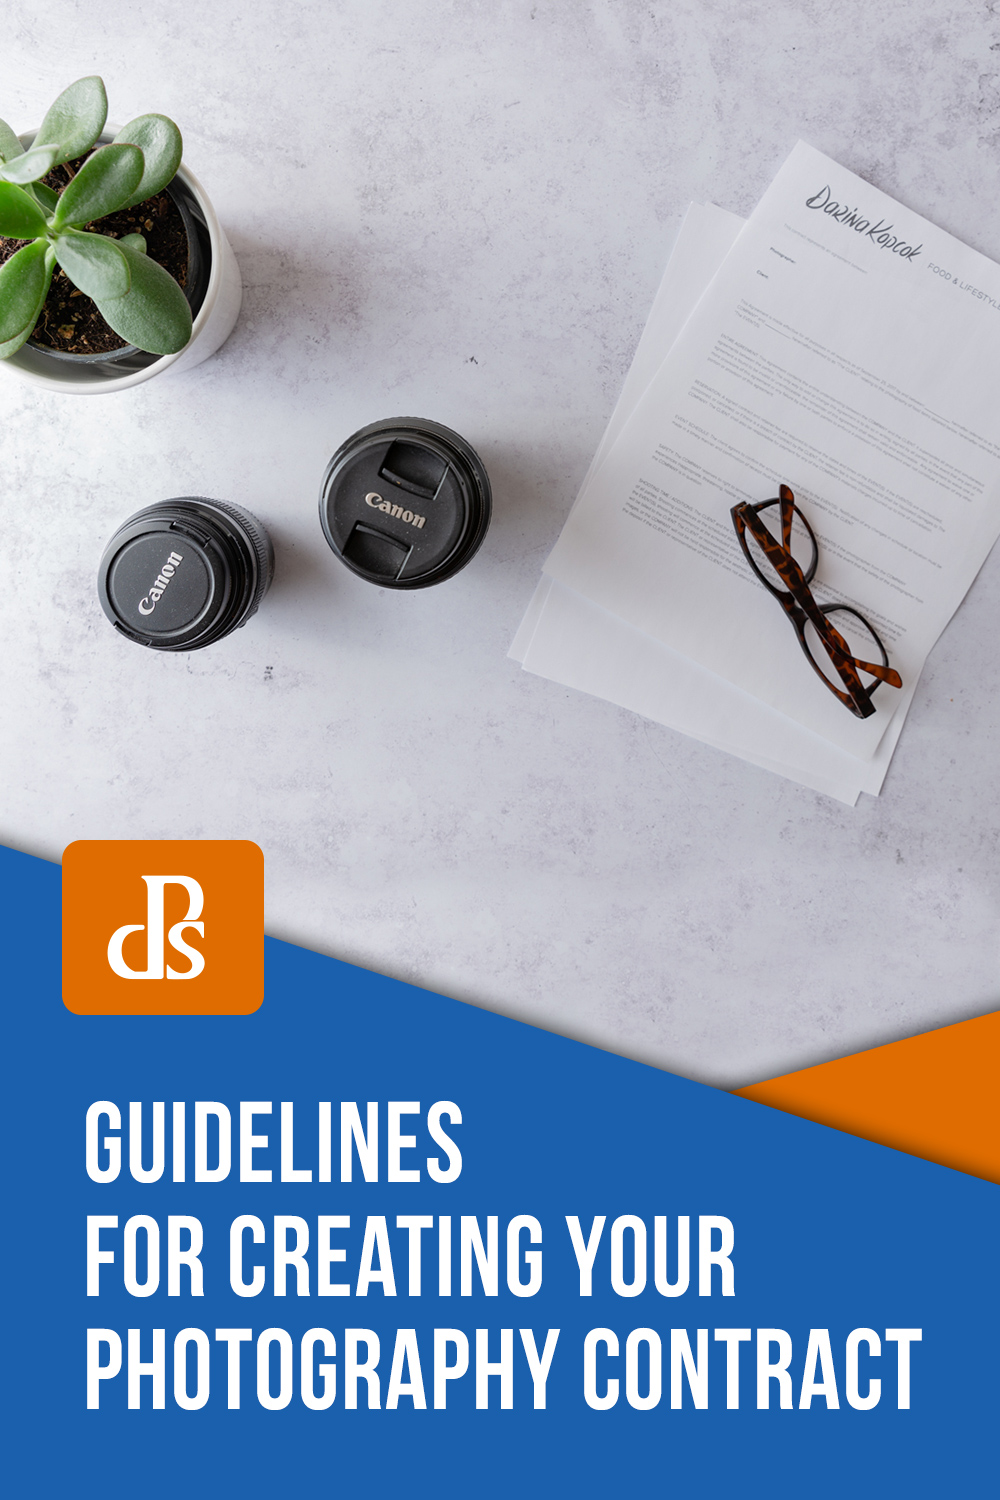 Guidelines for Creating Your Photography Contract